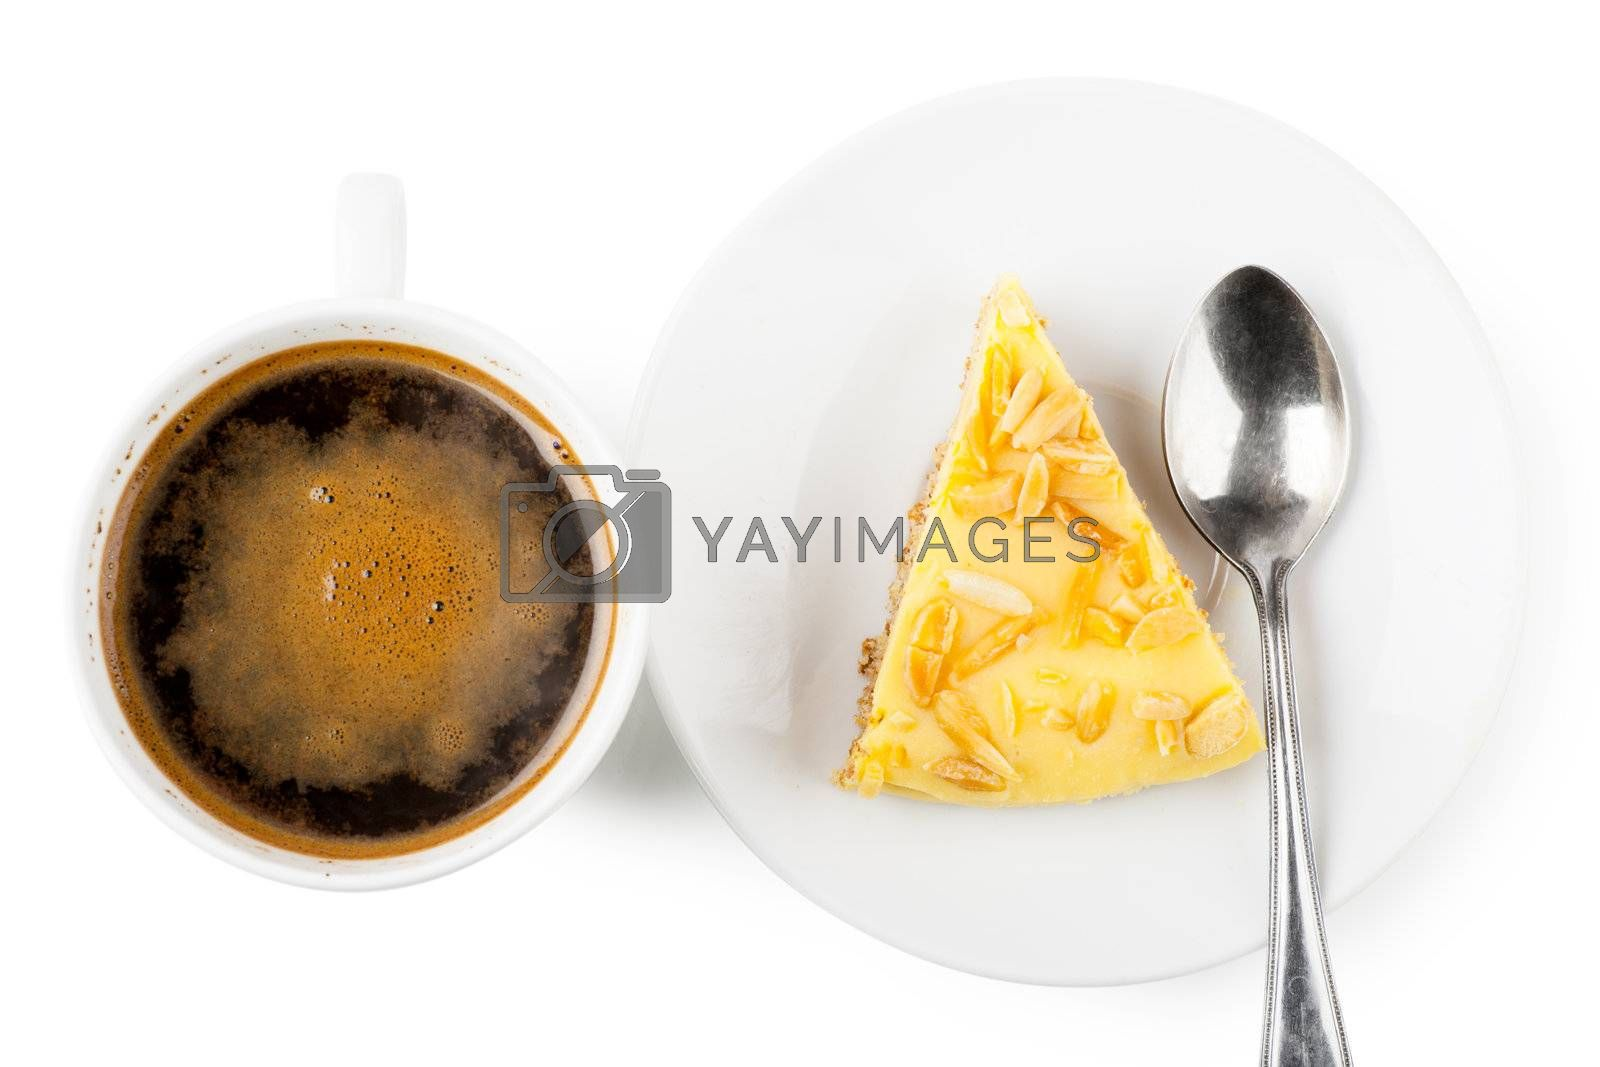 Top view of cup of coffee and piece of pie